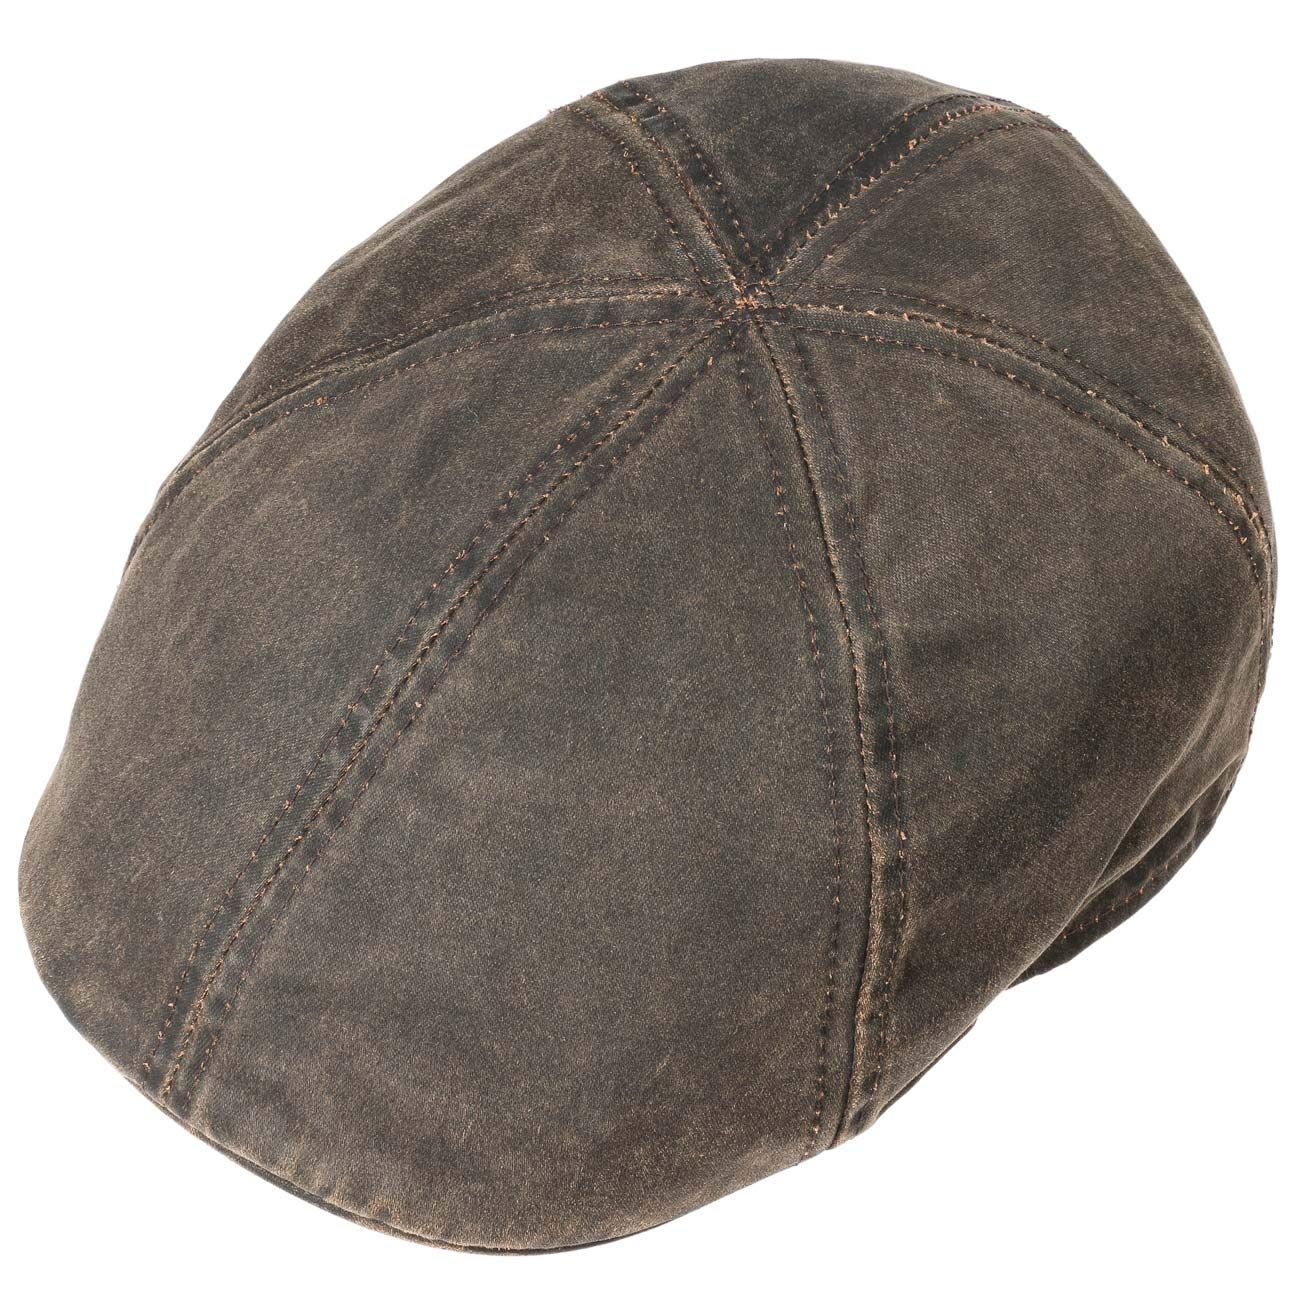 Stetson Mens Weathered Cotton Duck Ivy Cap (Brown, M) at Amazon Mens Clothing store: